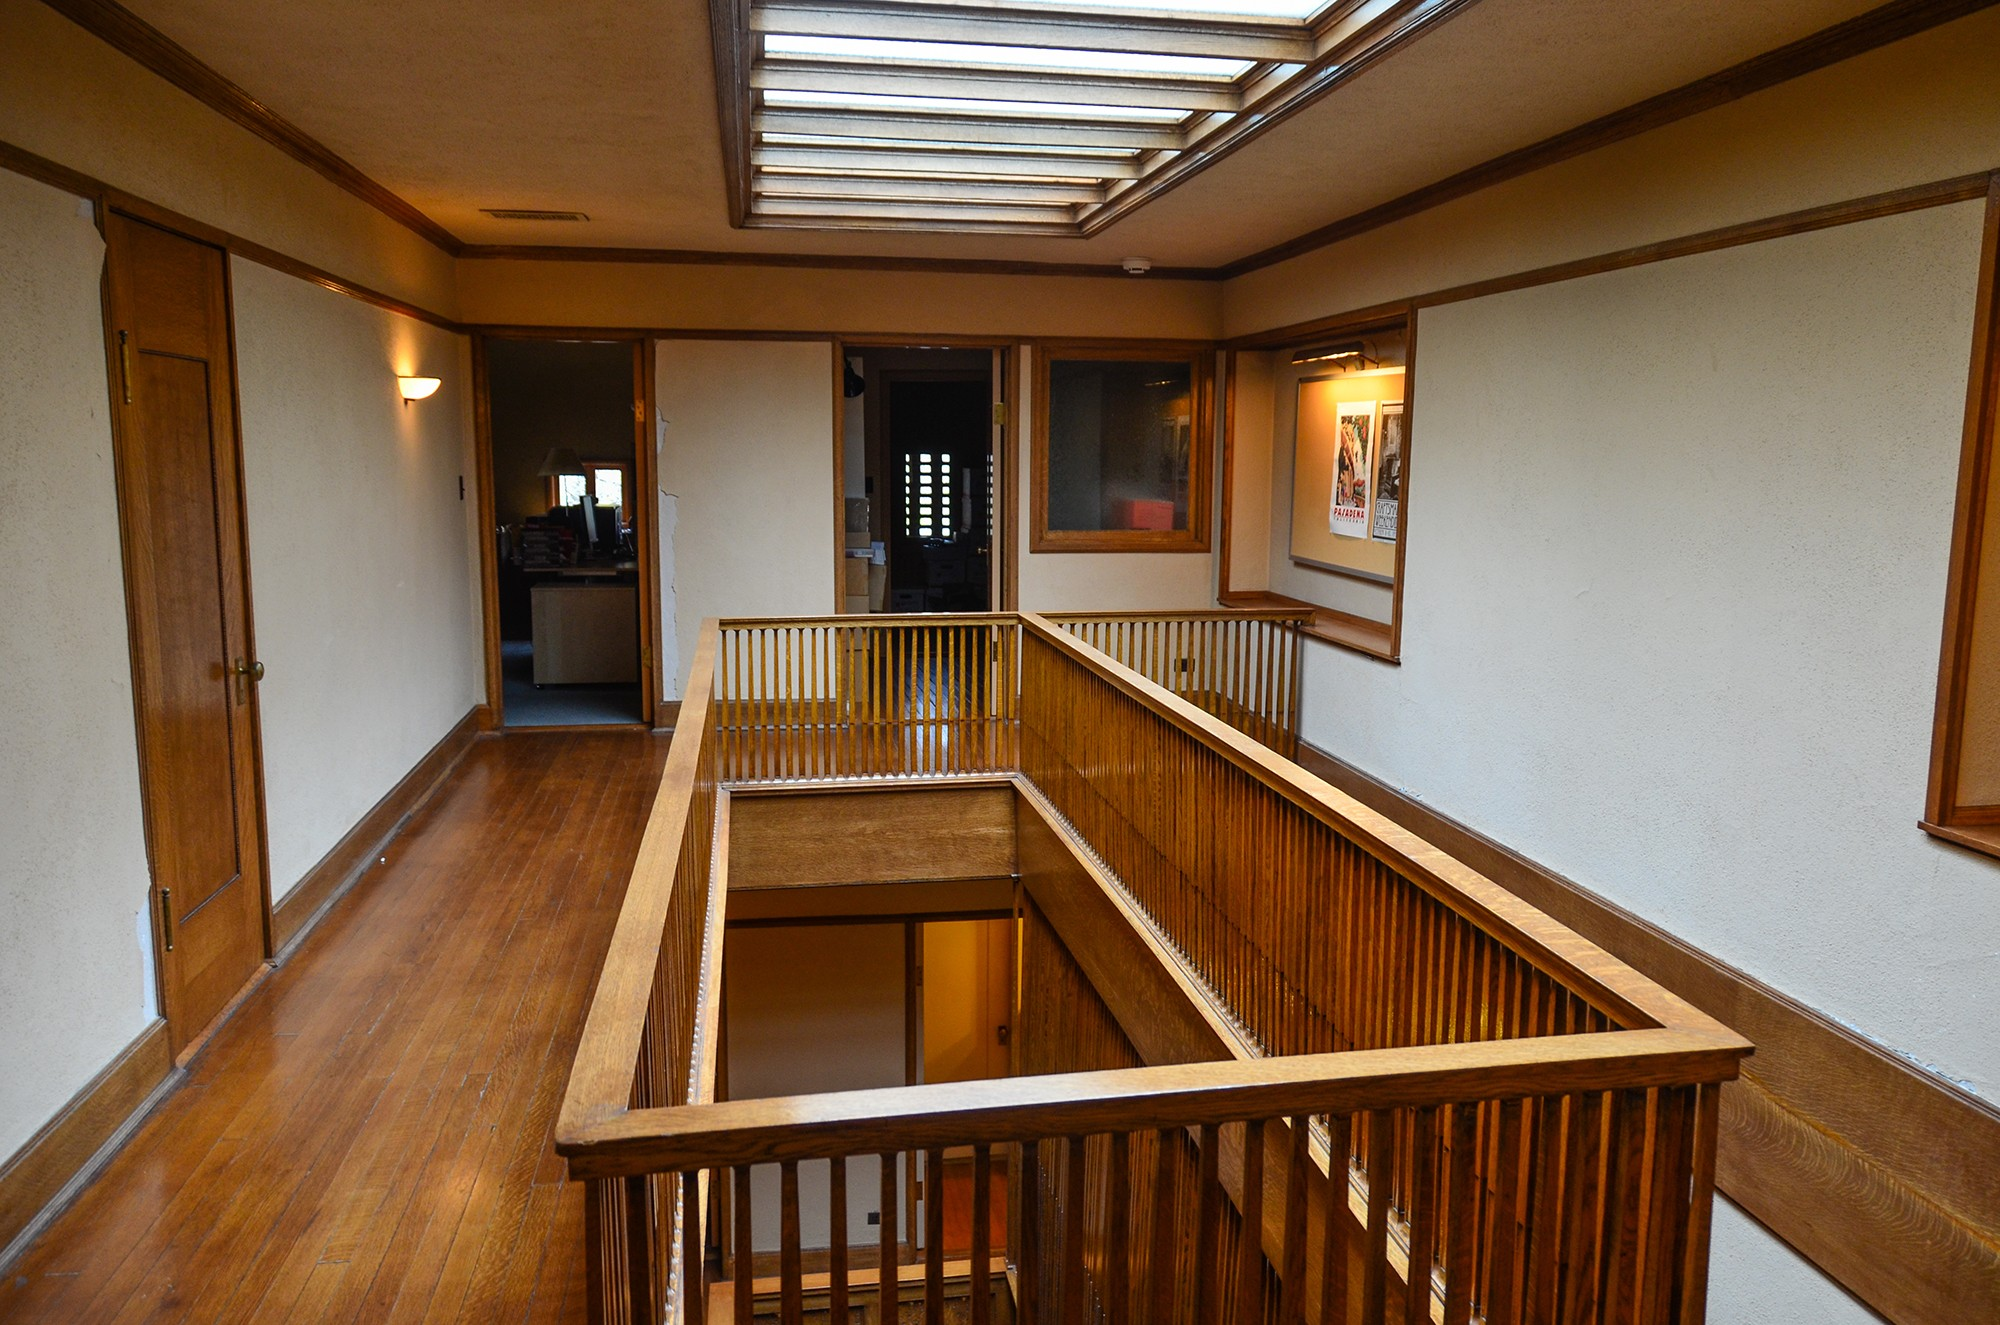 Charnley-Persky House · Buildings of Chicago · Chicago ...